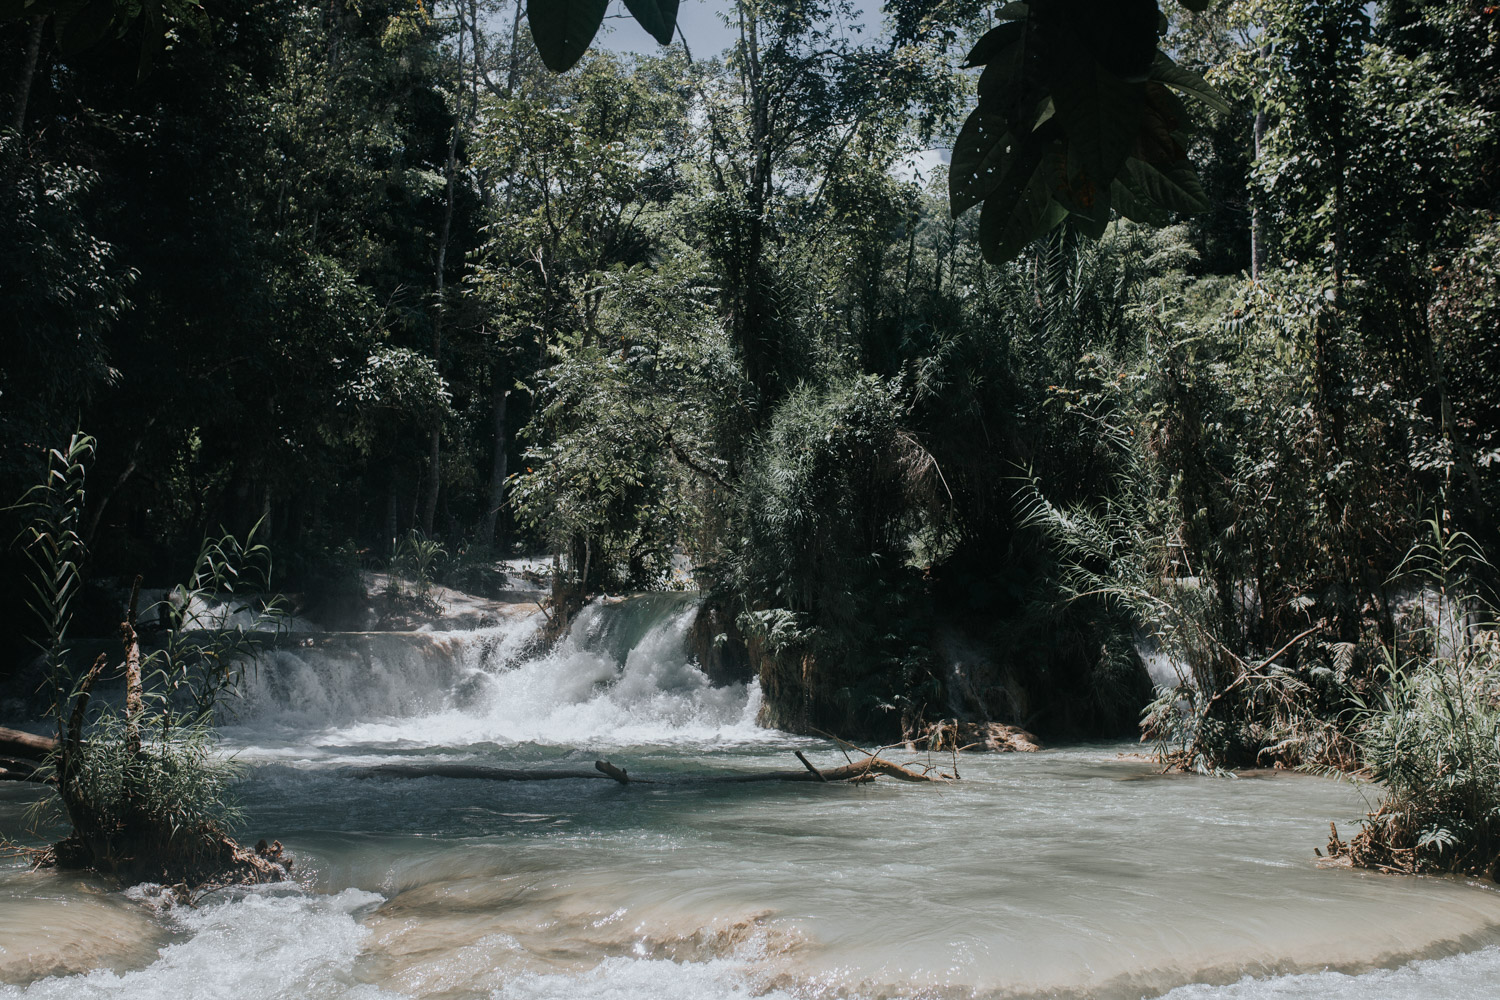 One week in Laos - Luang Prabang - Kuang Si Falls